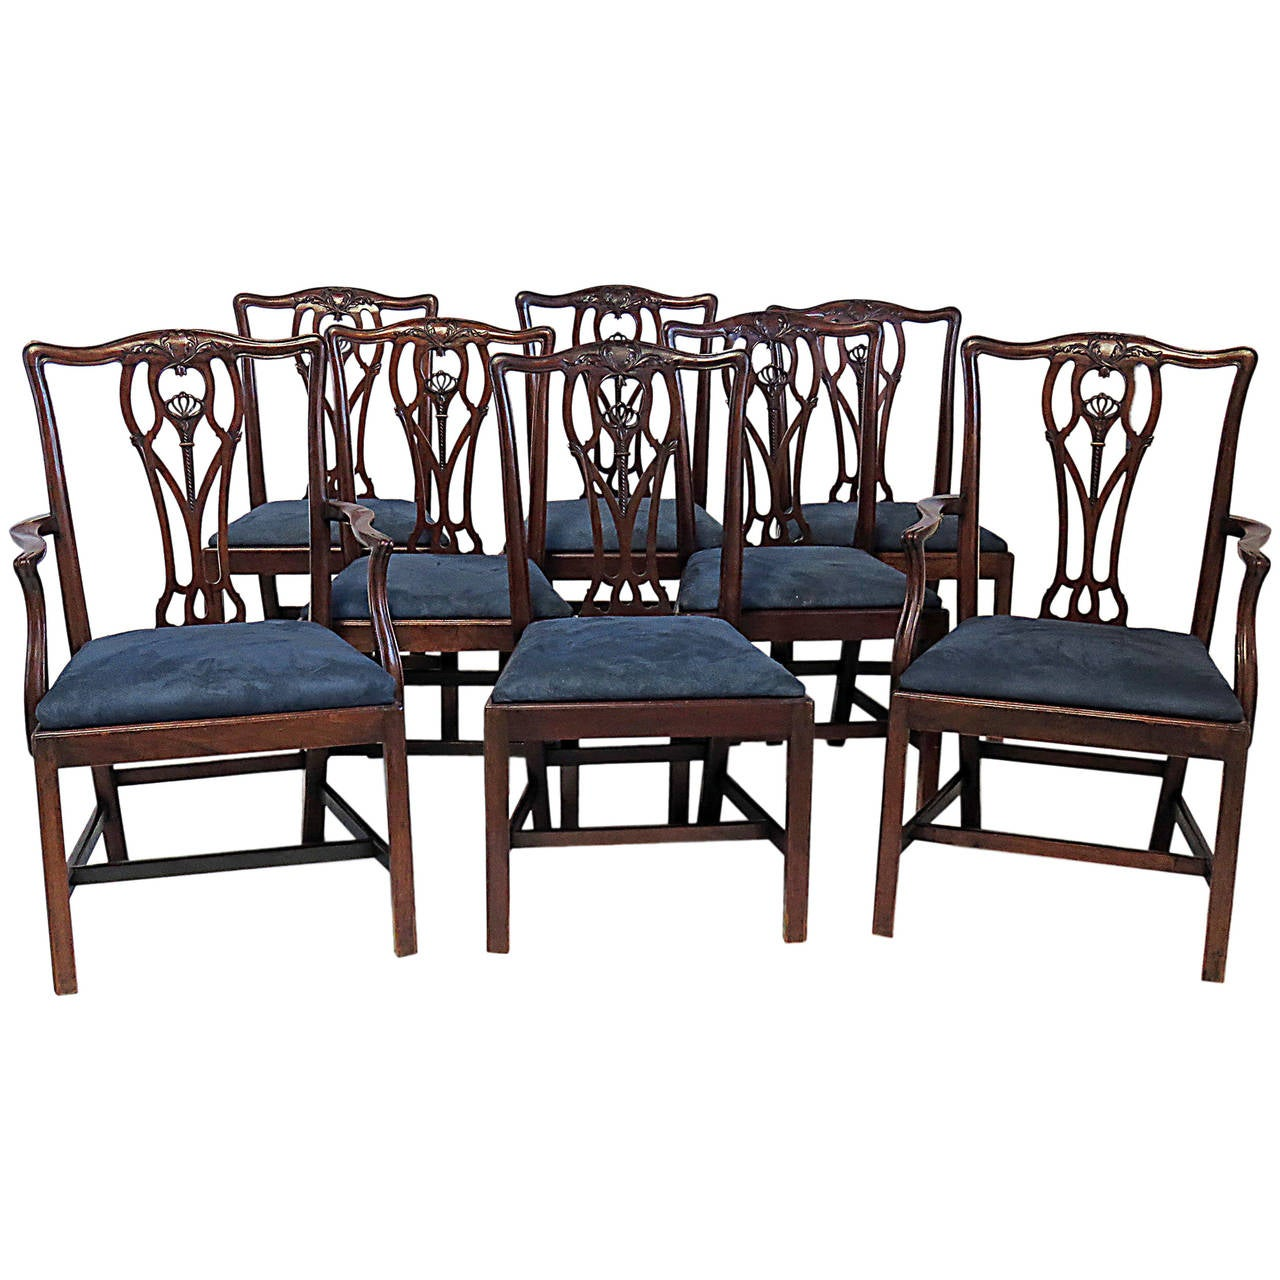 Eight chippendale style mahogany dining chairs circa 1880 for Mahogany dining room furniture